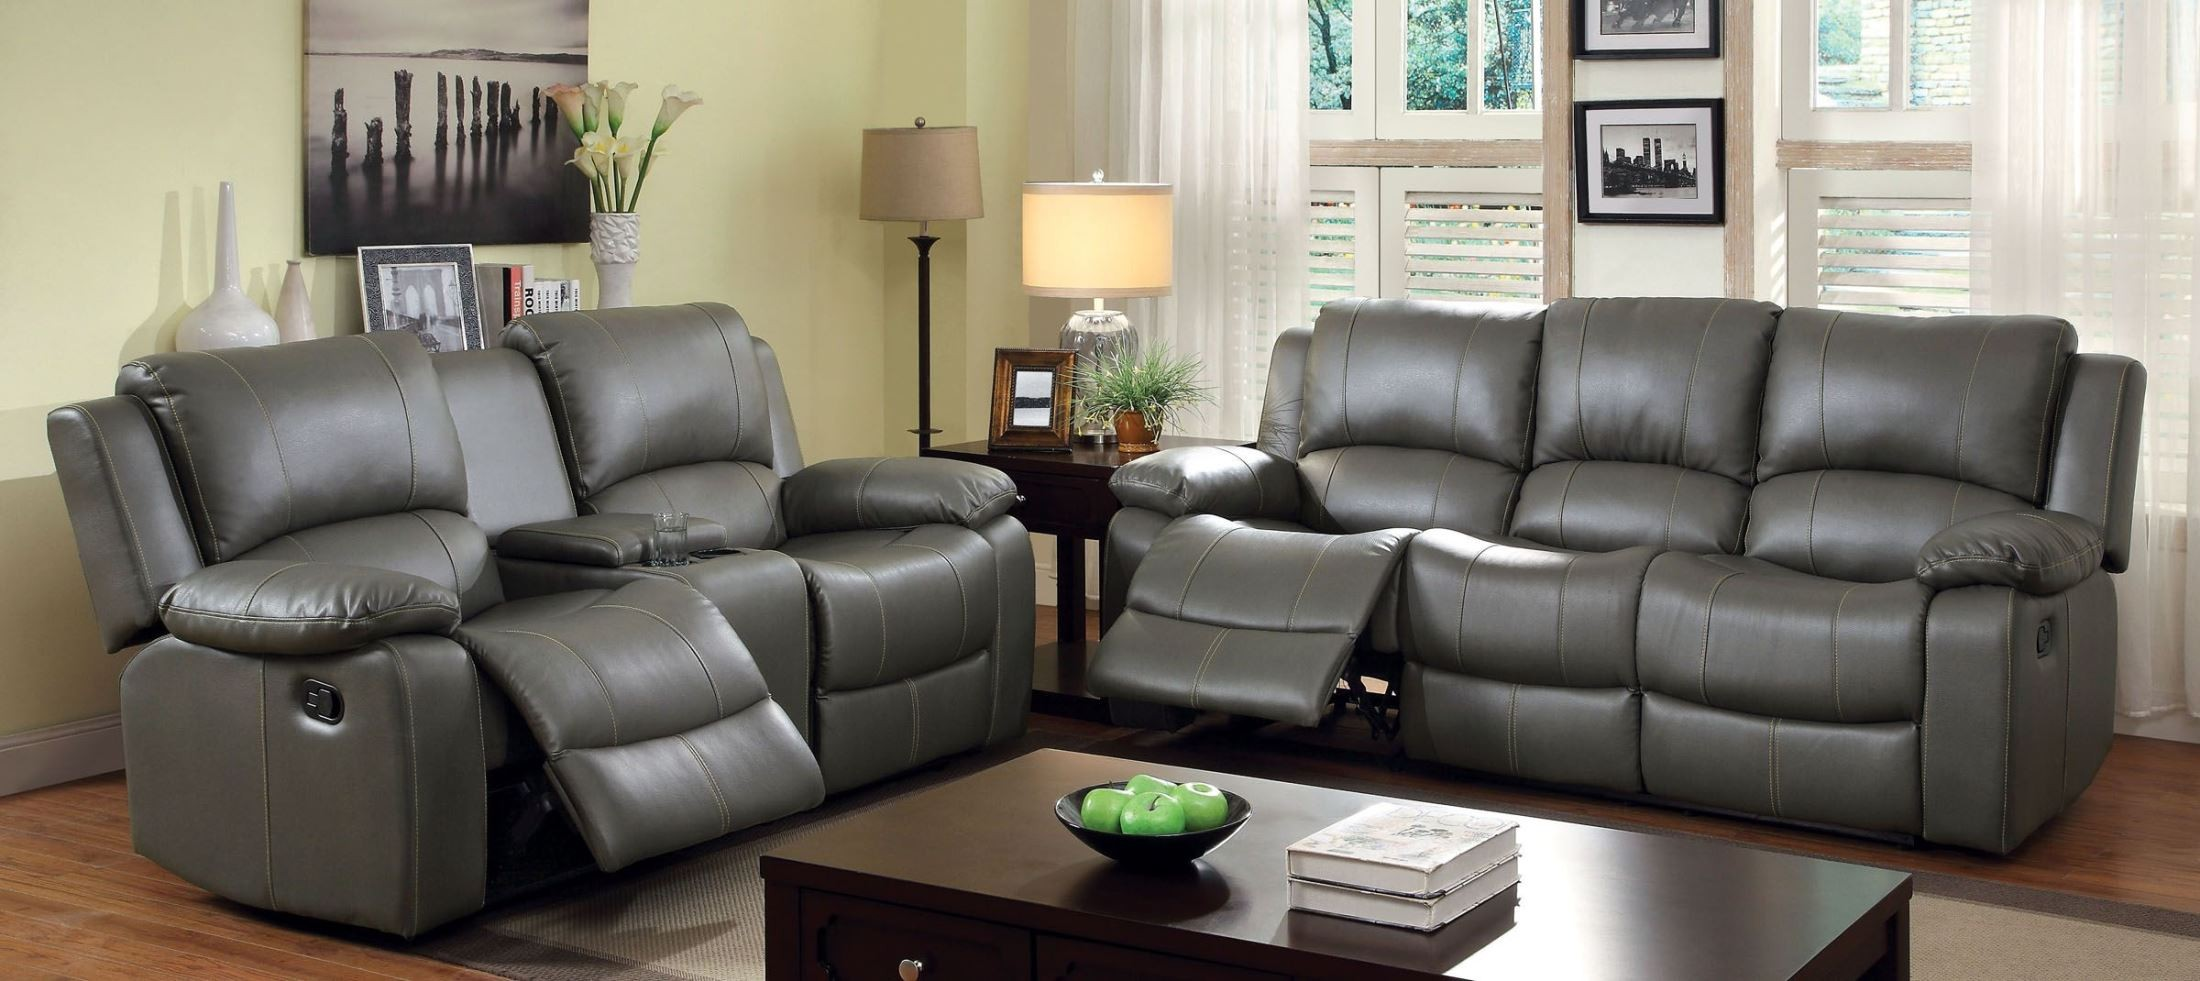 Sarles gray drop down table reclining living room set from for M s living room furniture